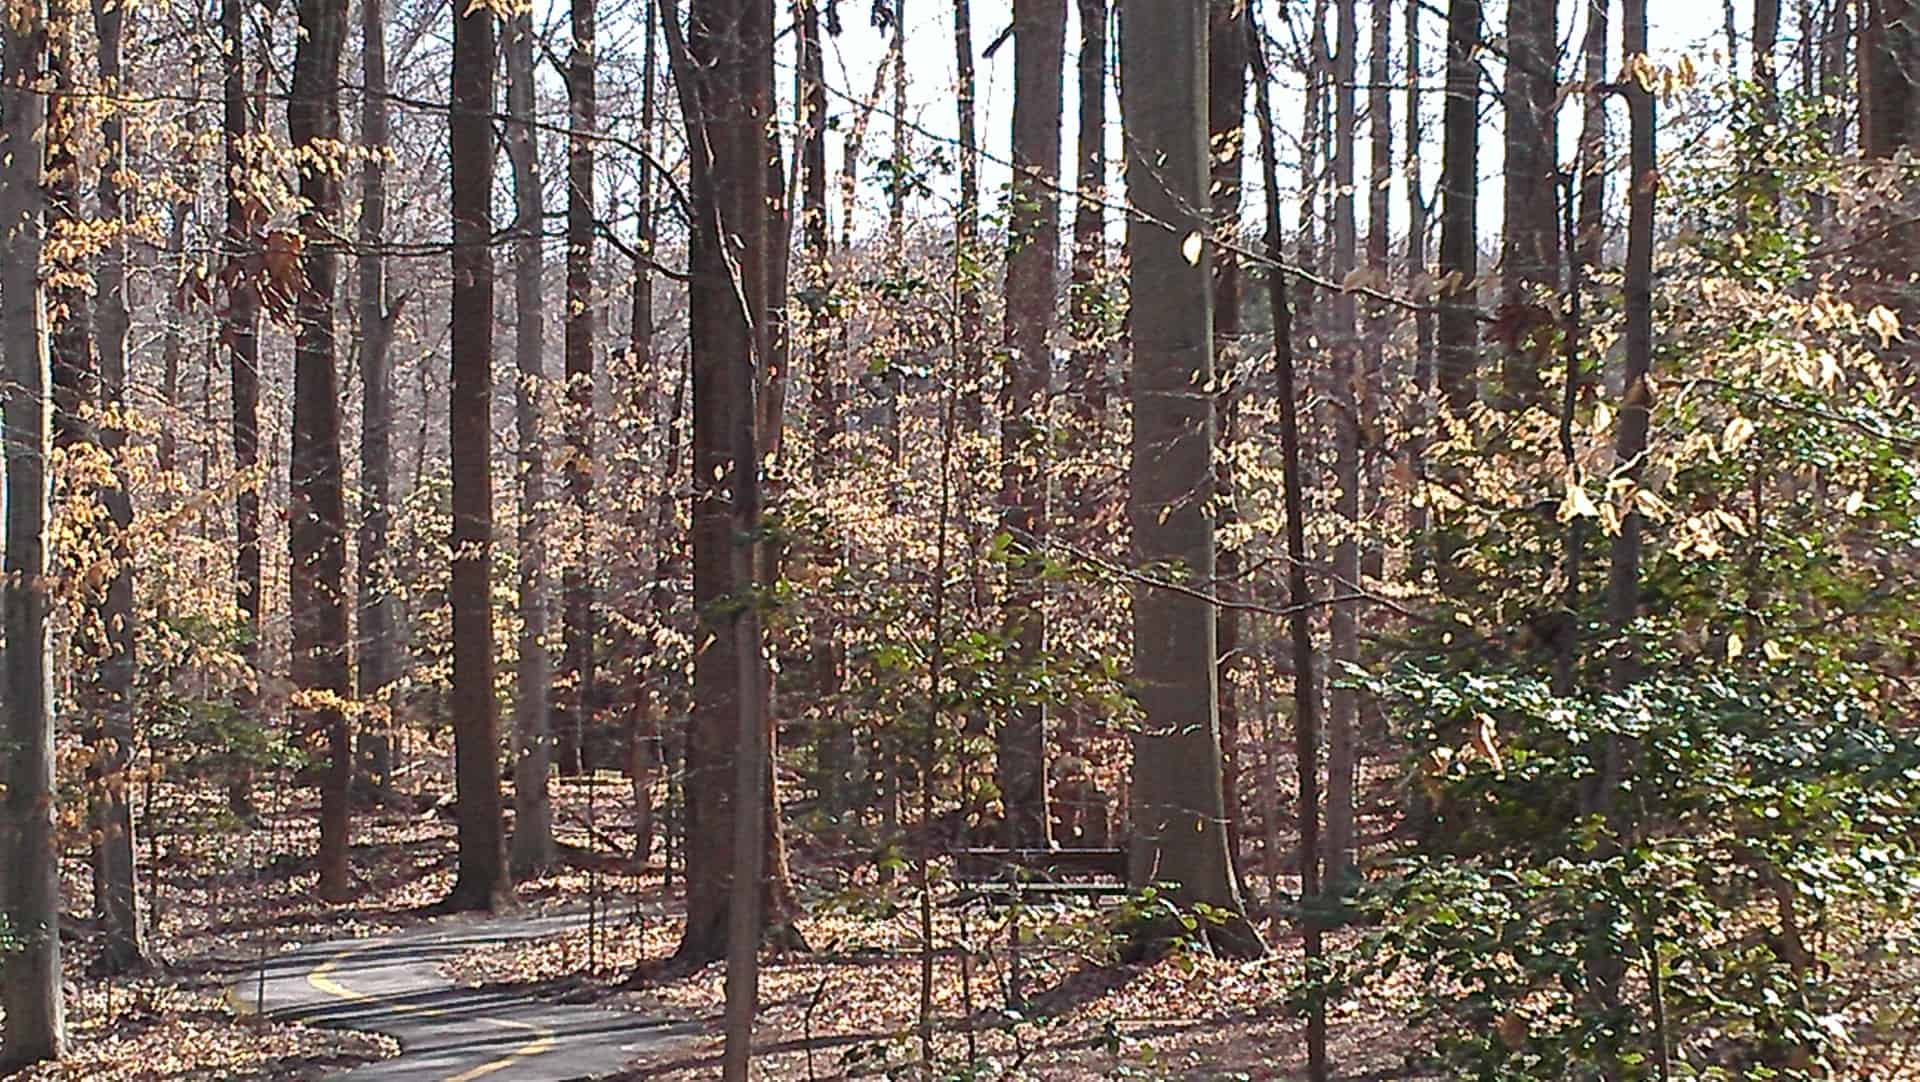 The hardwood forest, Maryland. Who loves hardwoods?